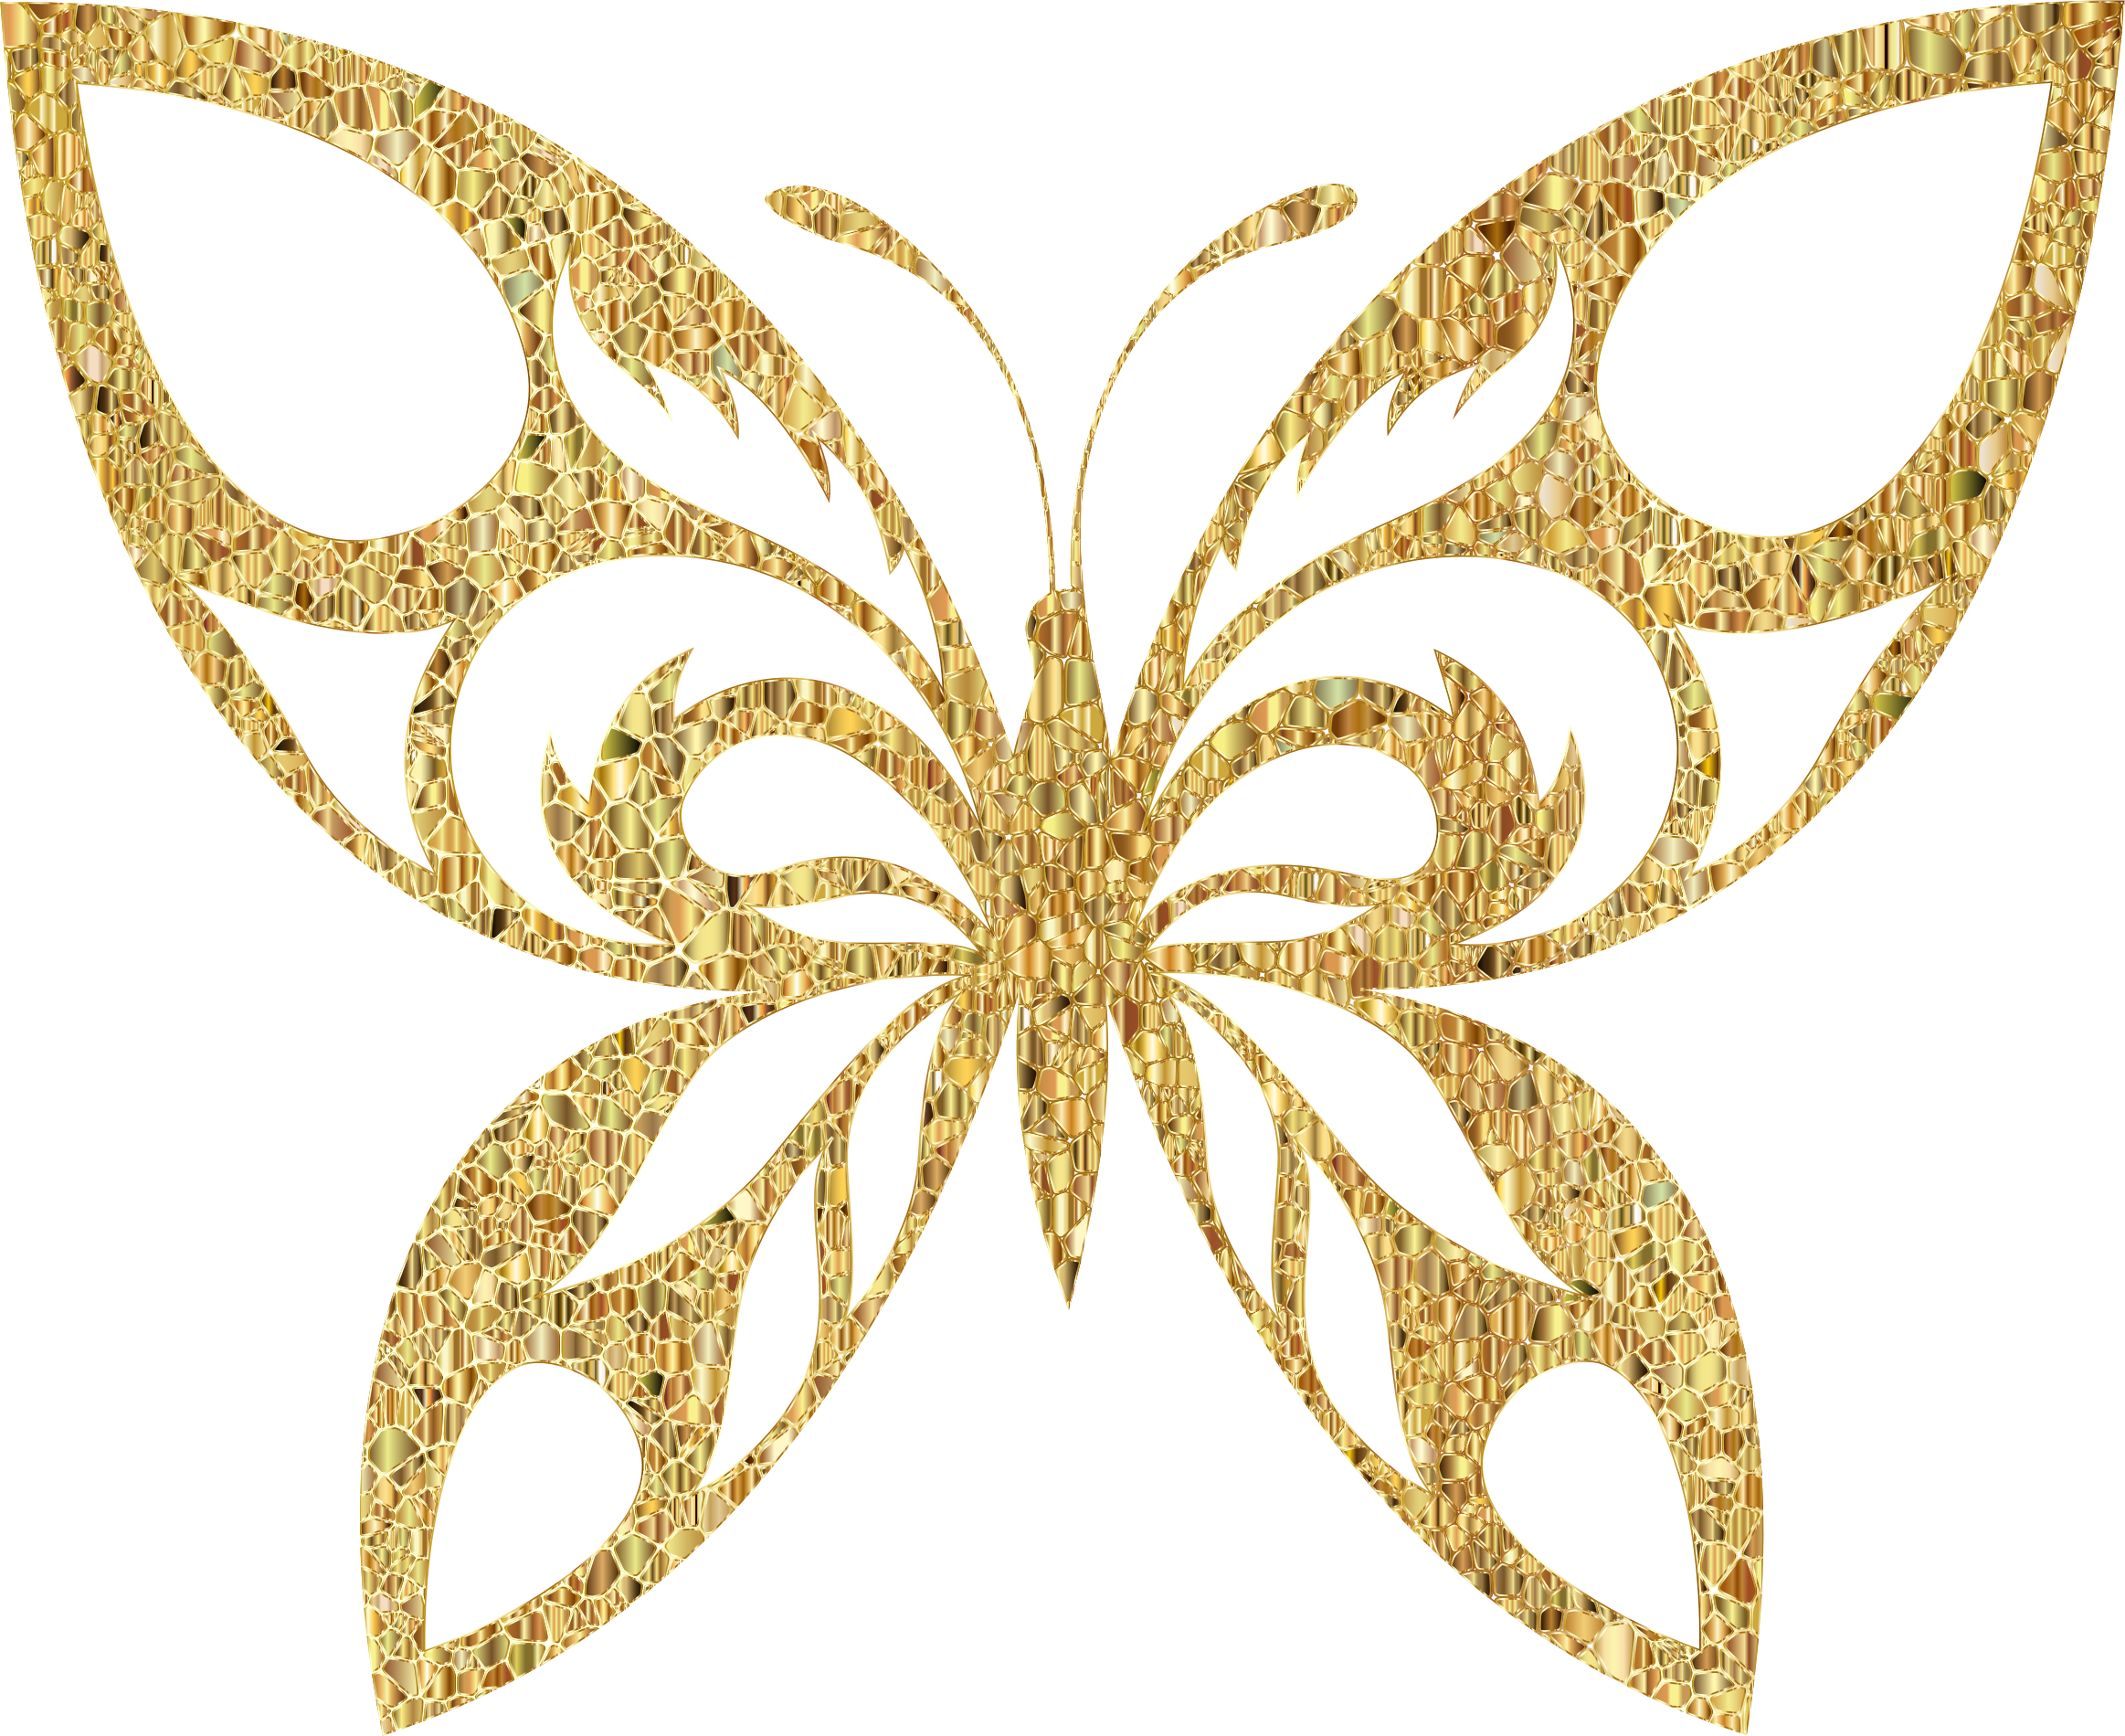 Butterfly clip art clear background. Gold tiled tribal silhouette